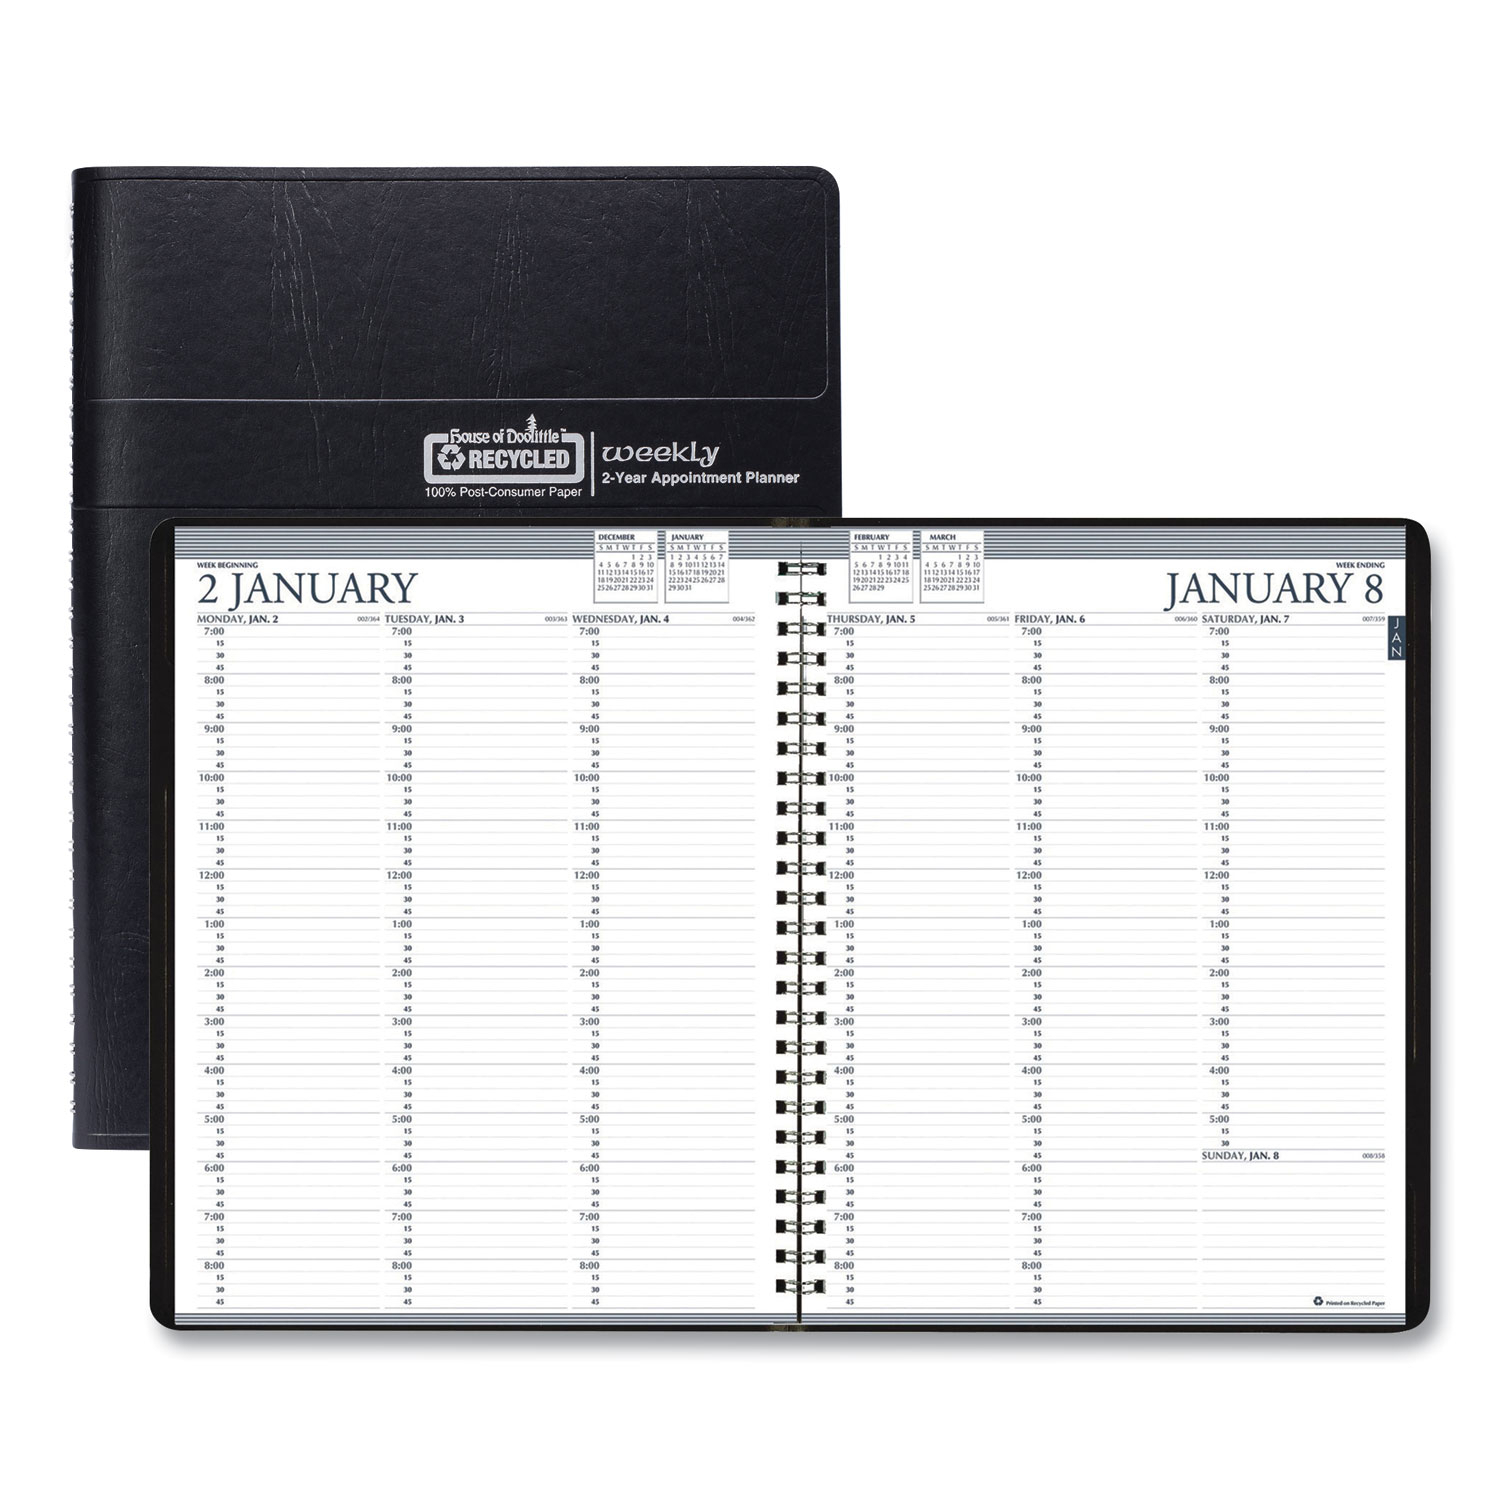 Recycled Two-Year Professional Weekly Planner, 11 X 8.5, Black, 2021-2022 intended for 2021-2022 Three Year Planner: 3 Year